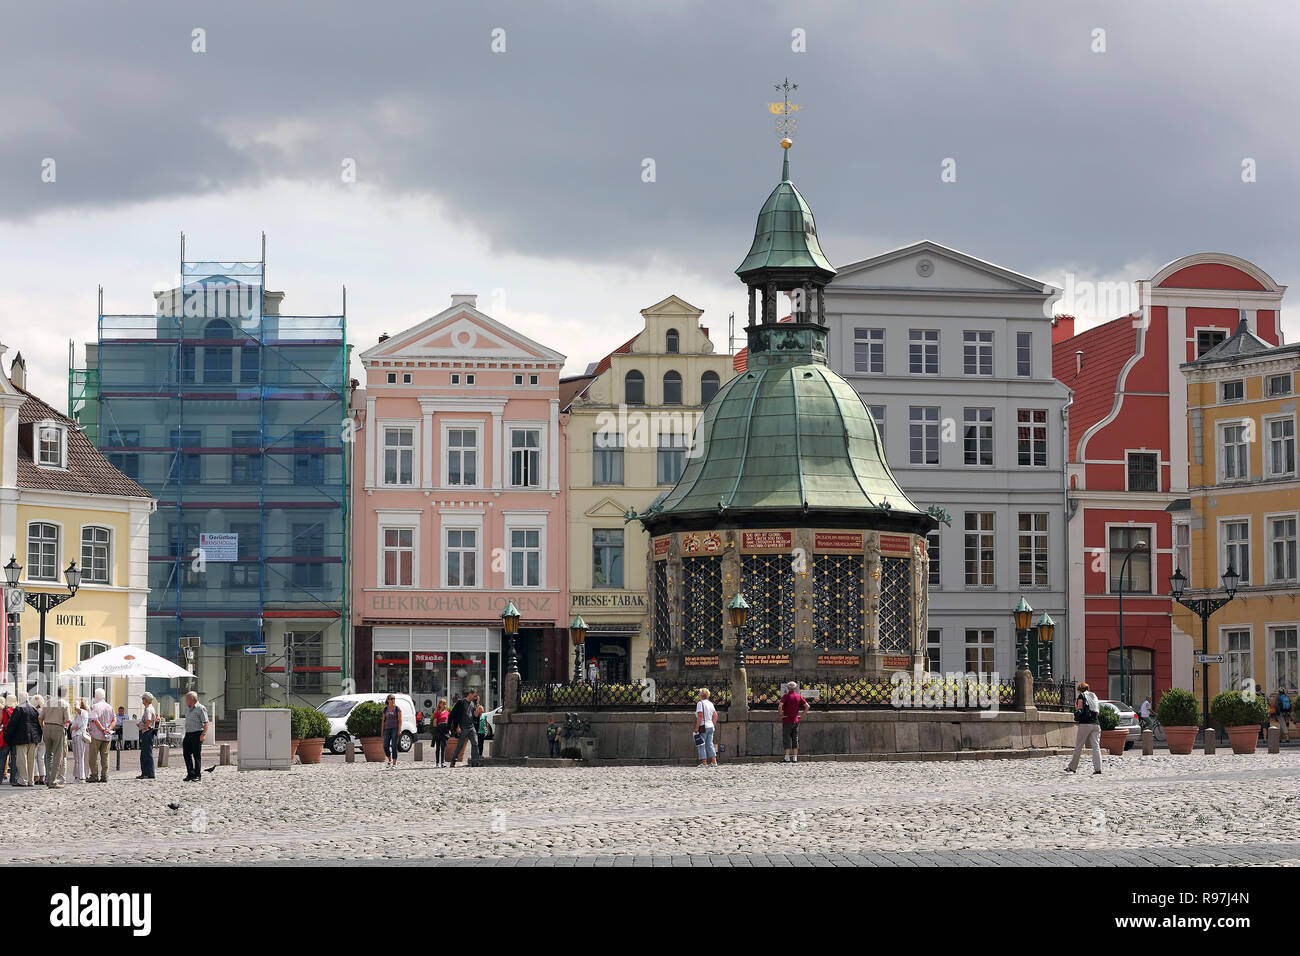 The famous waterworks at market place of Wismar in Germany, built in 1602 - Stock Image